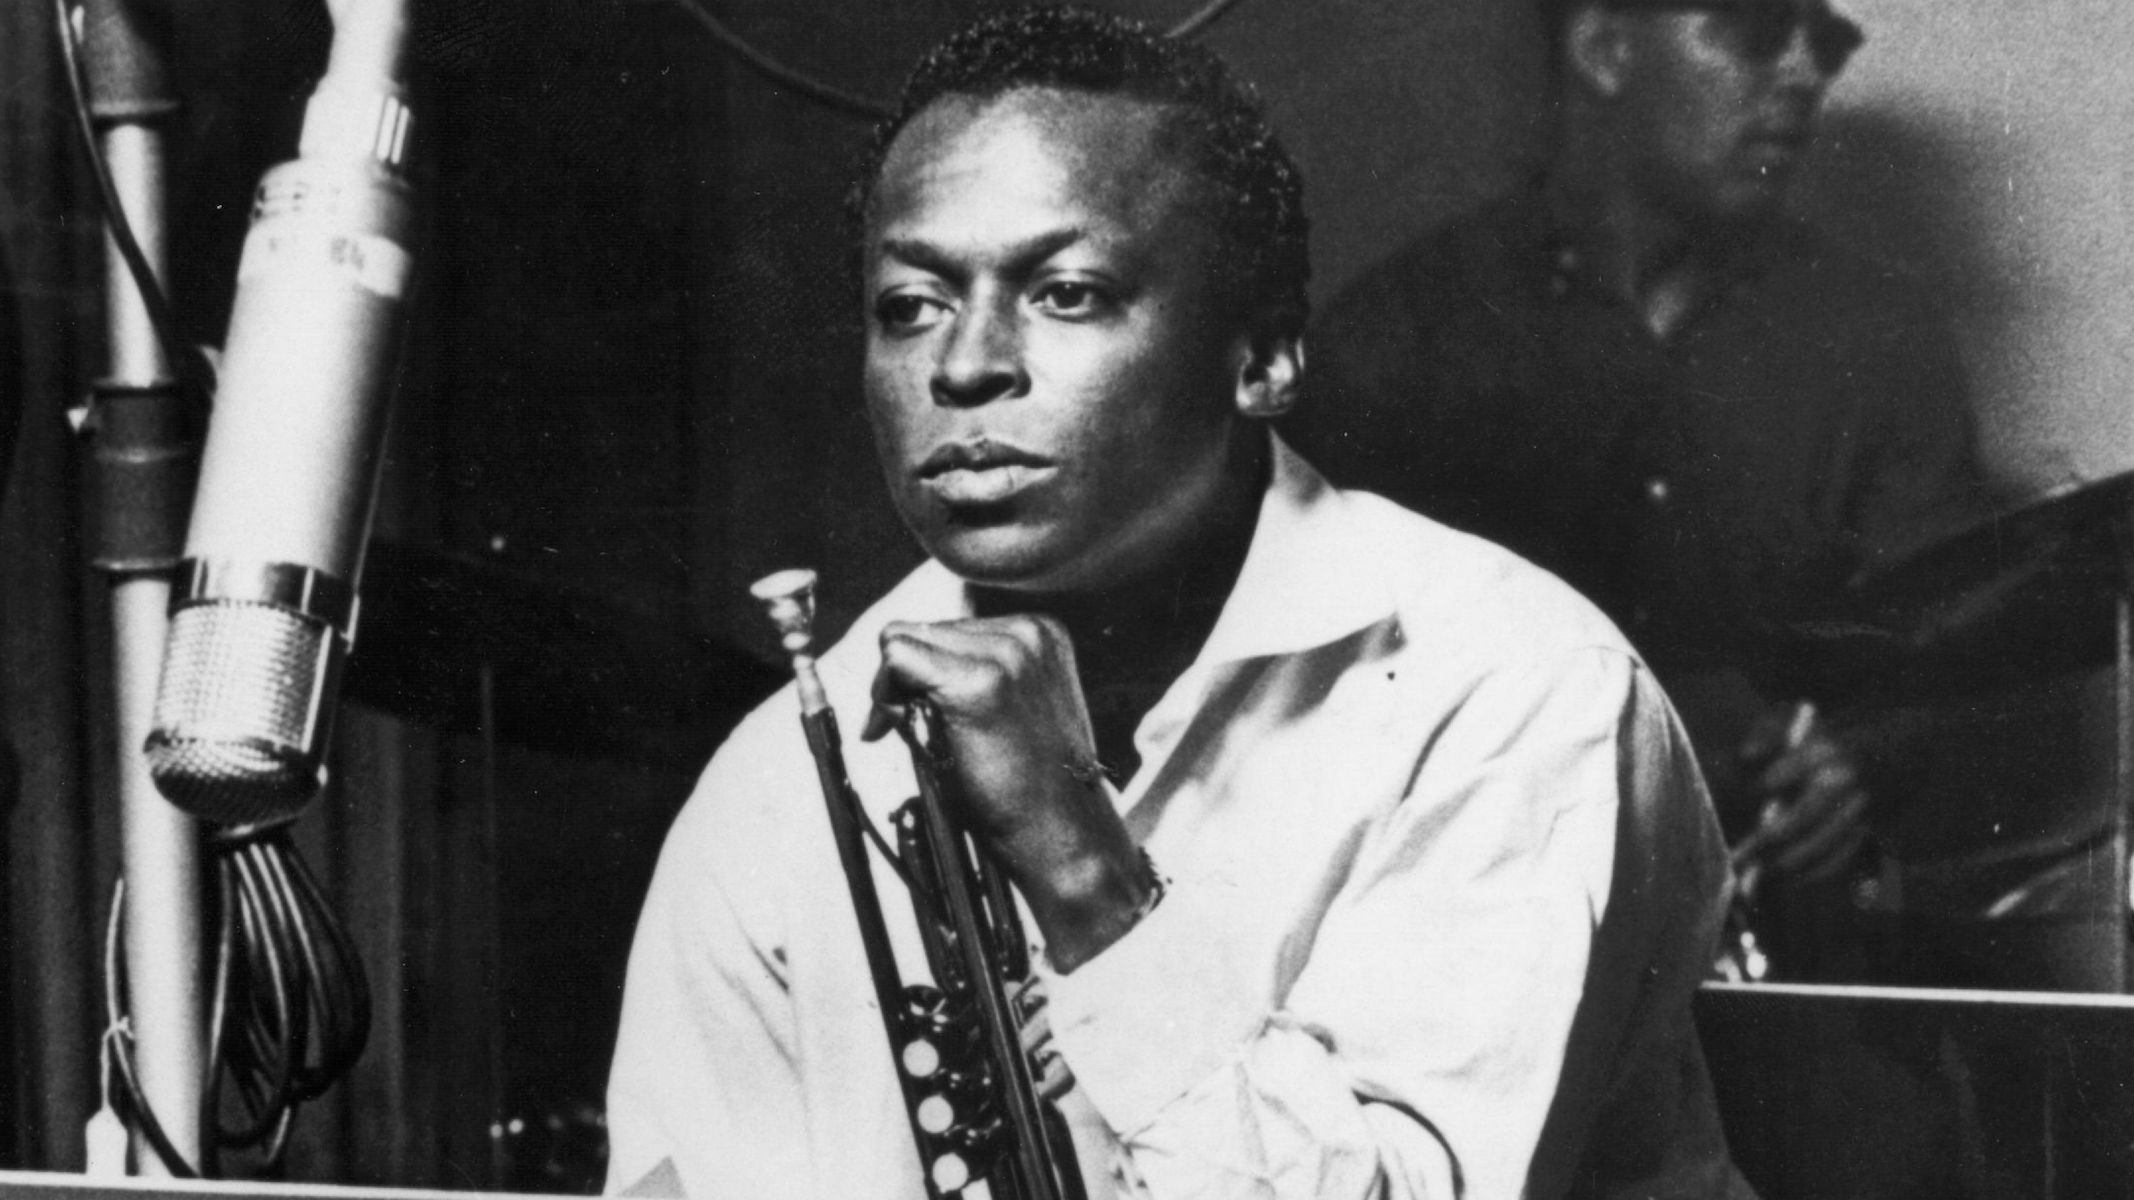 Hear Miles Davis Soar in a Career-High Moment on This Day in 1971